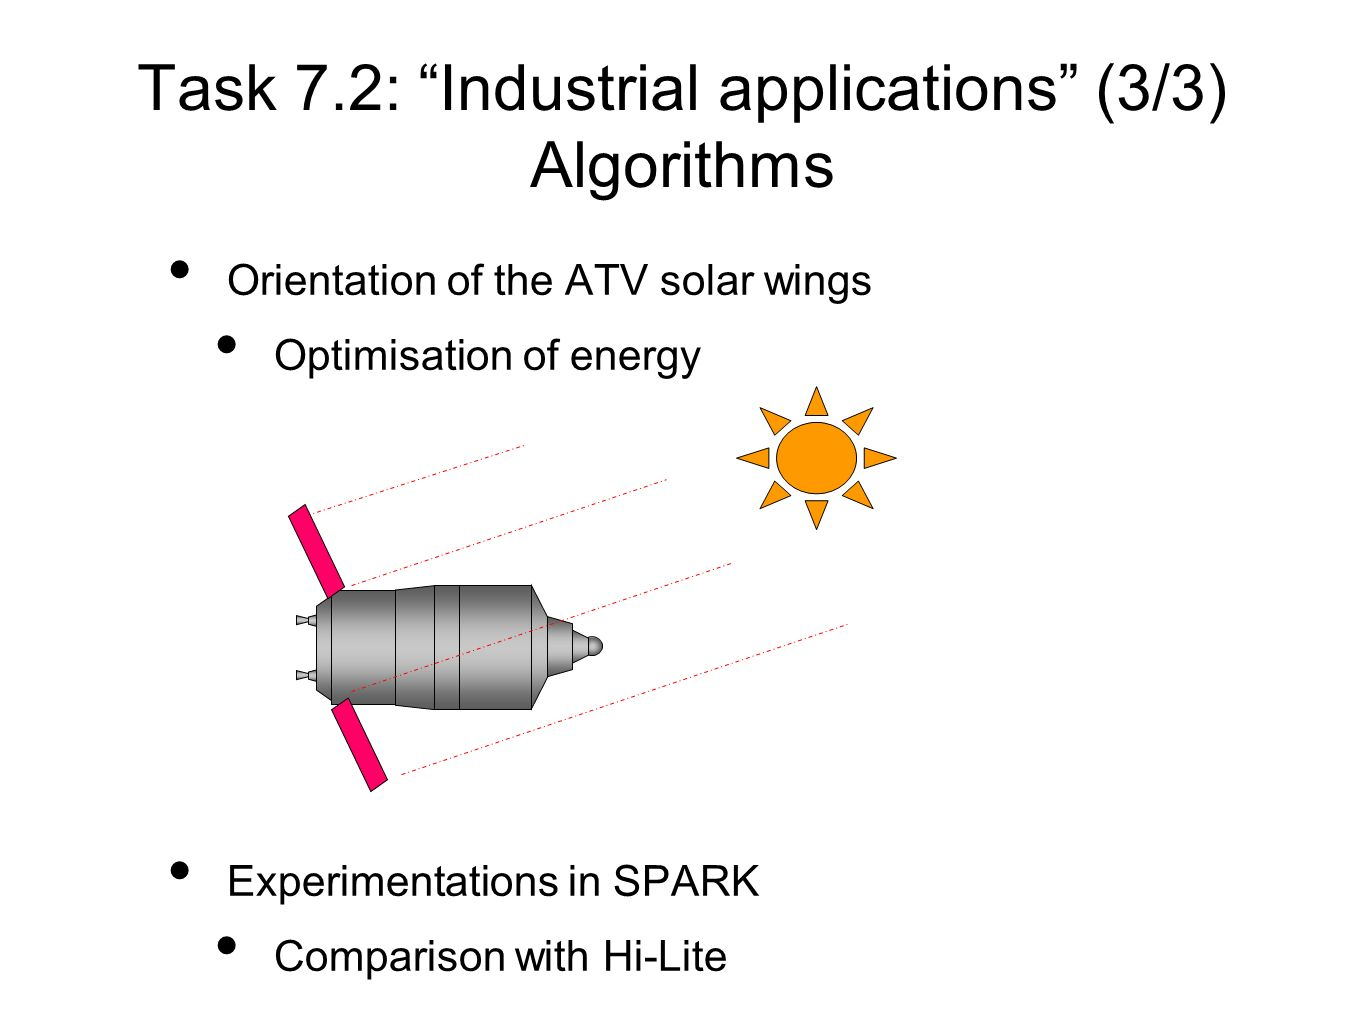 Orientation of the ATV solar wings Optimisation of energy Experimentations in SPARK Comparison with Hi-Lite Task 7.2: Industrial applications (3/3) Al